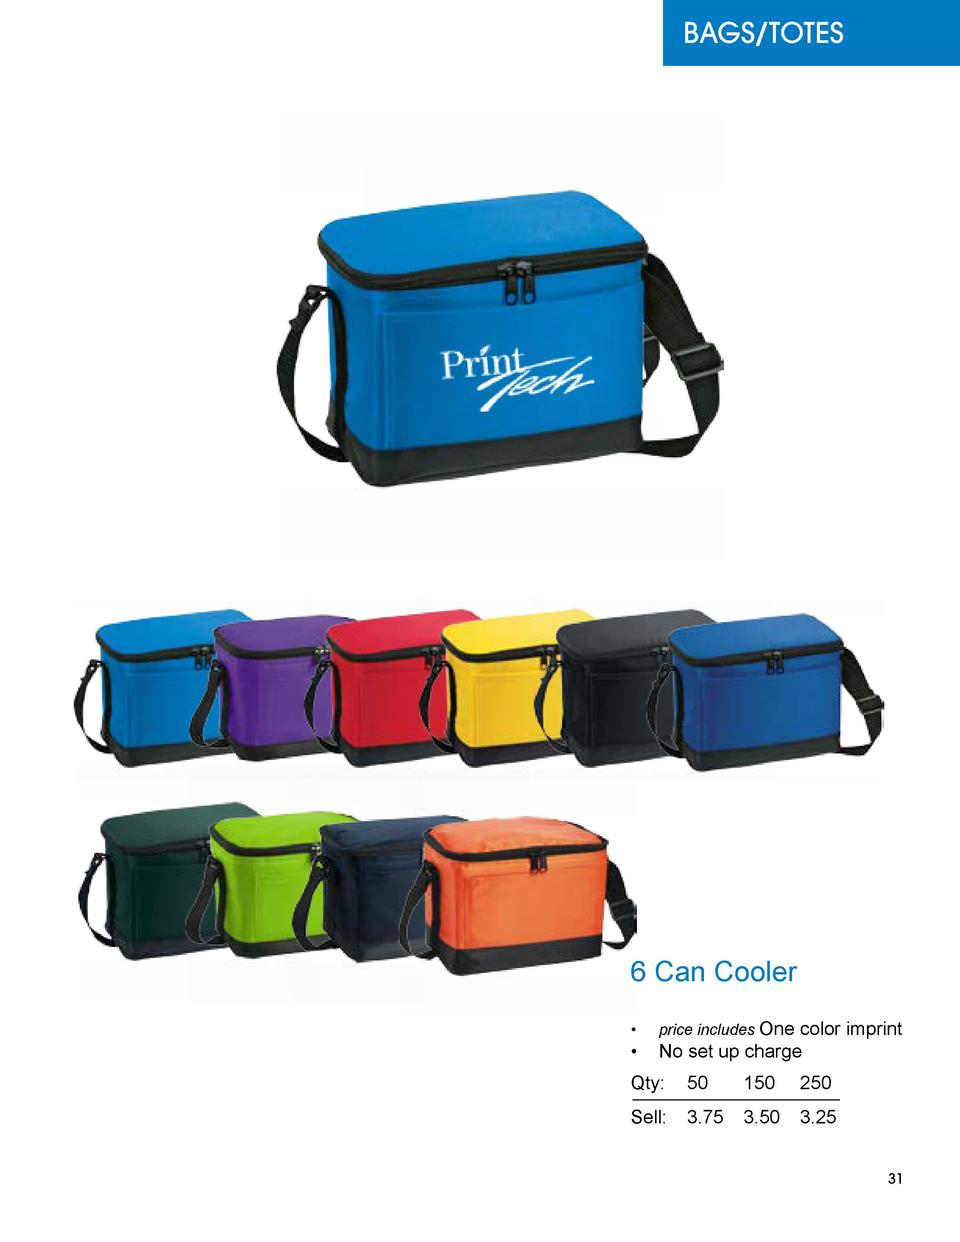 BAGS TOTES  6 Can Cooler      price includes One color imprint      No set up charge  Qty  50  150 250 Sell   3.75 3.50 3....